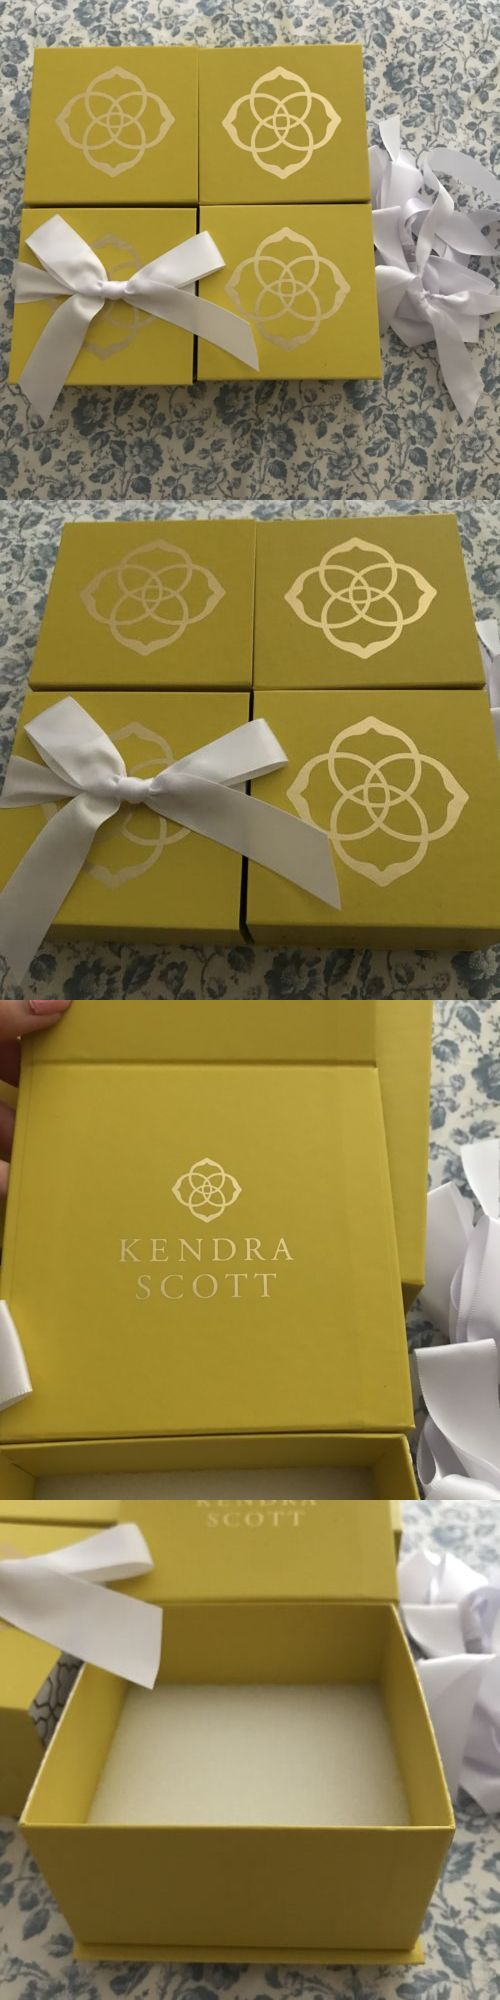 Lot of Four Kendra Scott Yellow Magnetic Gift Boxes with White Bows